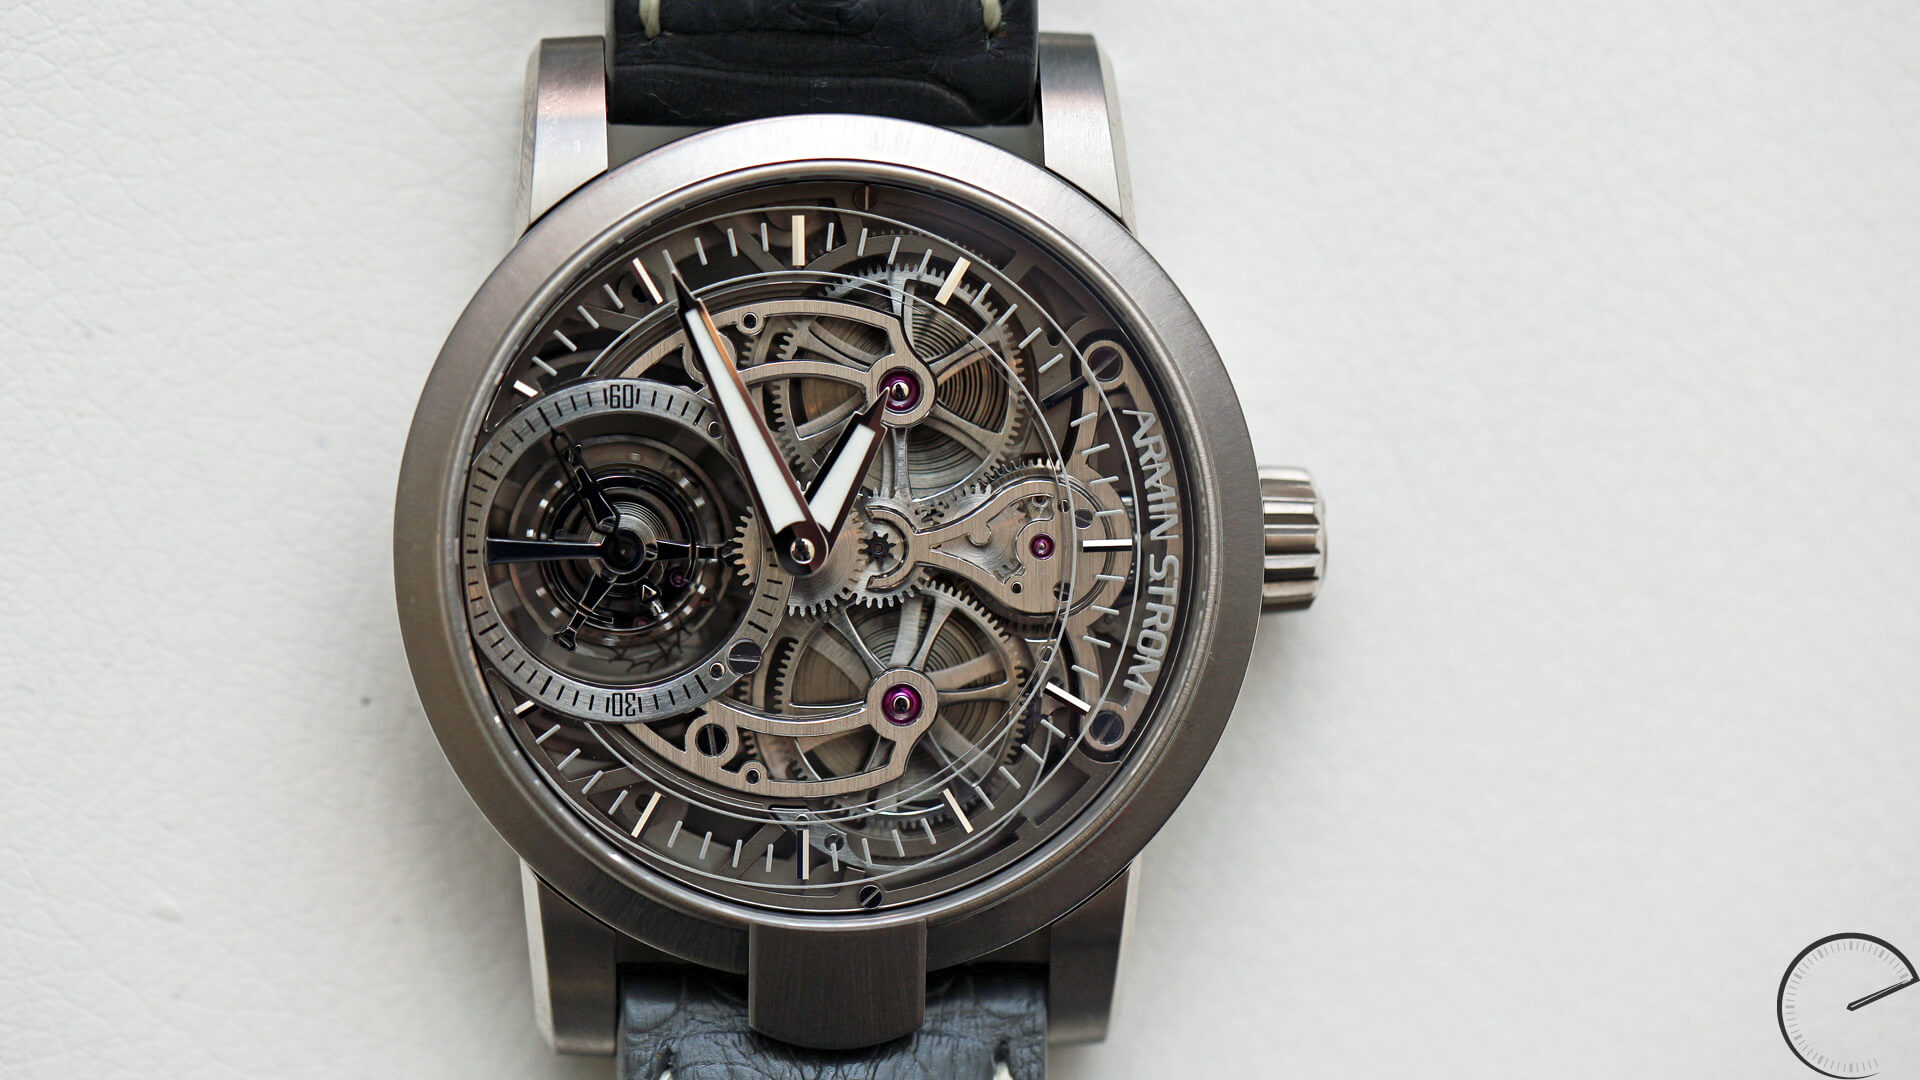 Armin Strom Tourbillon Skeleton Air Ref. TI15-TA.50